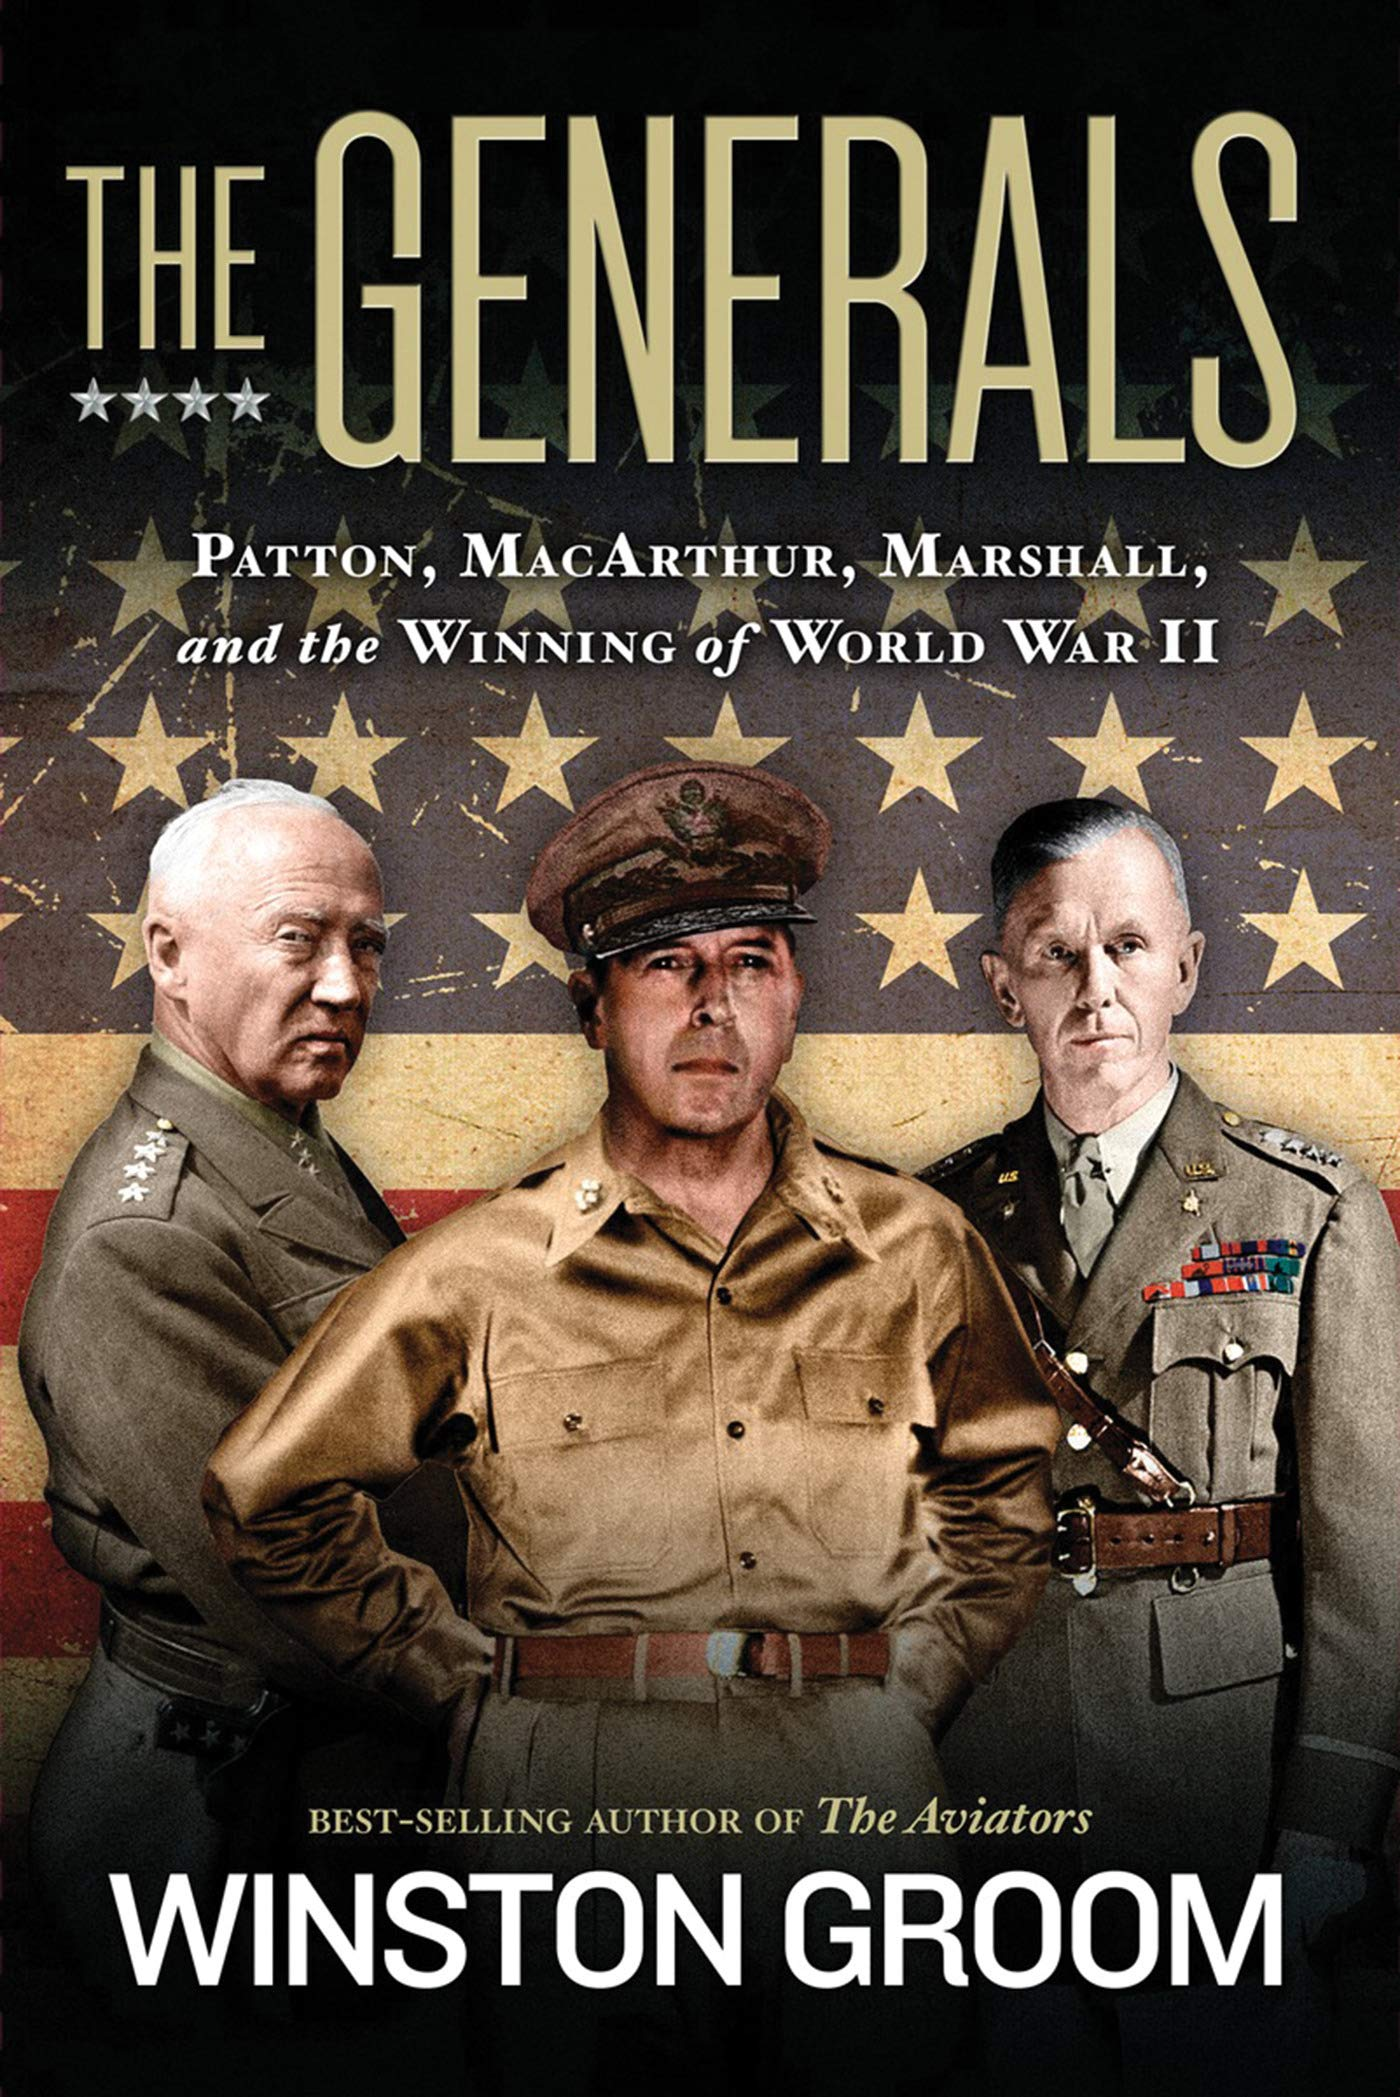 Download The Generals: Patton, MacArthur, Marshall, and the Winning of World War II PDF